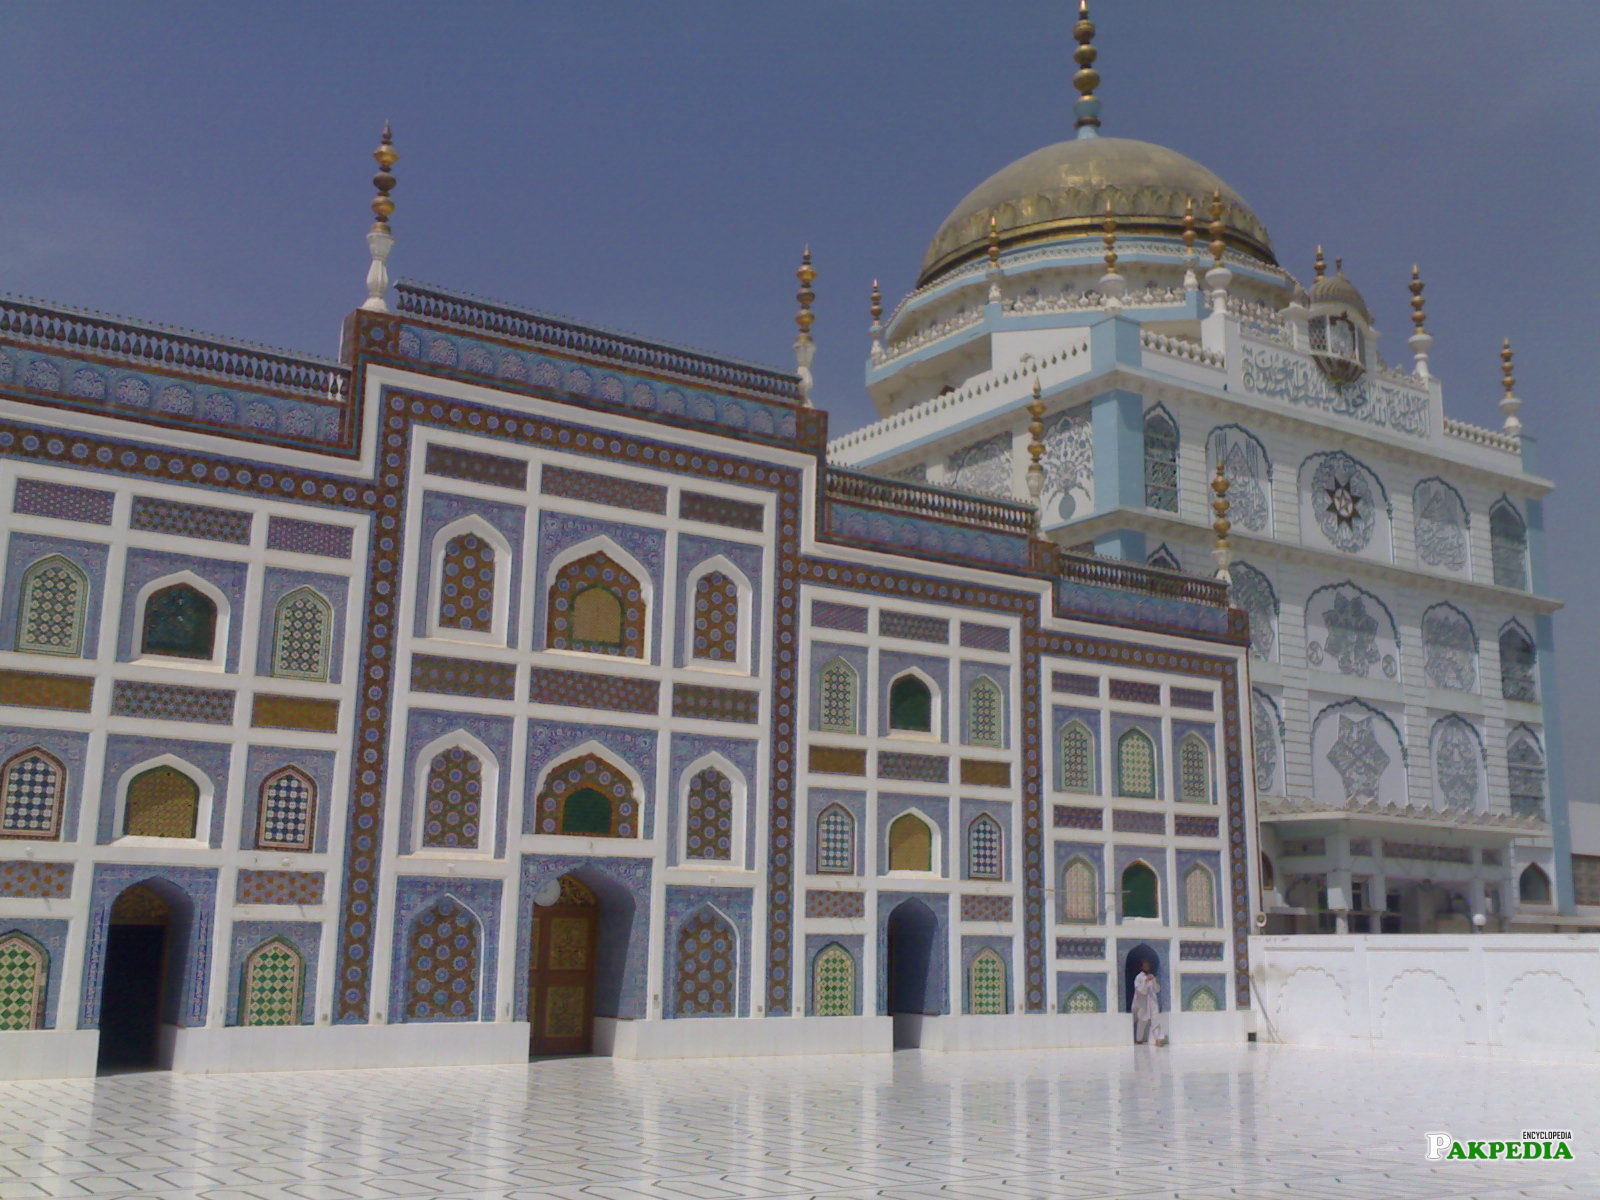 Holy Shrines in Khairpur